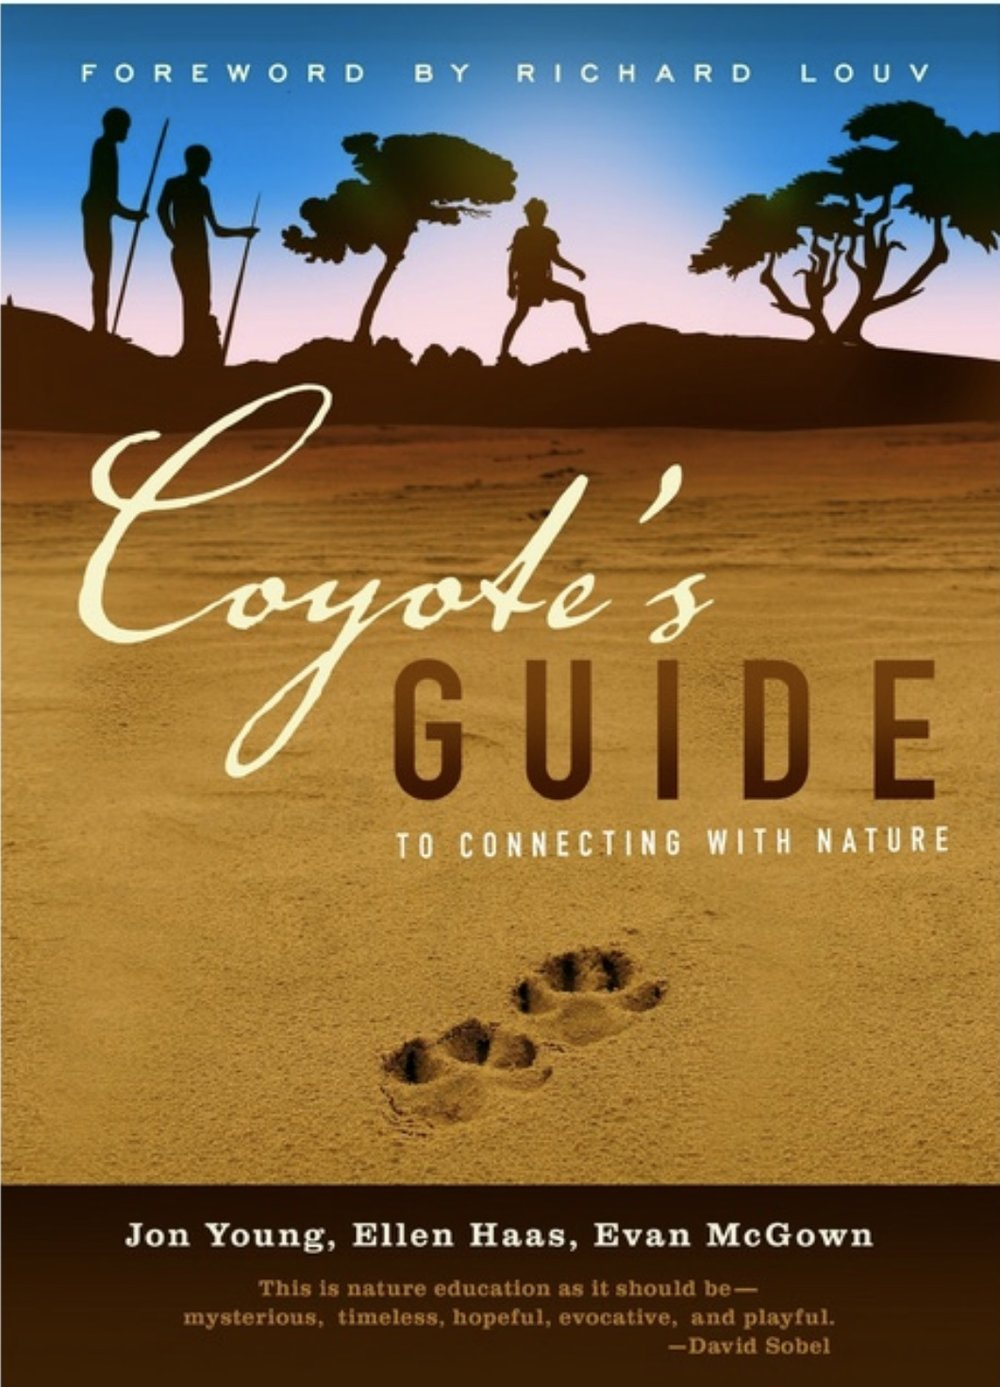 coyote's guide.jpeg